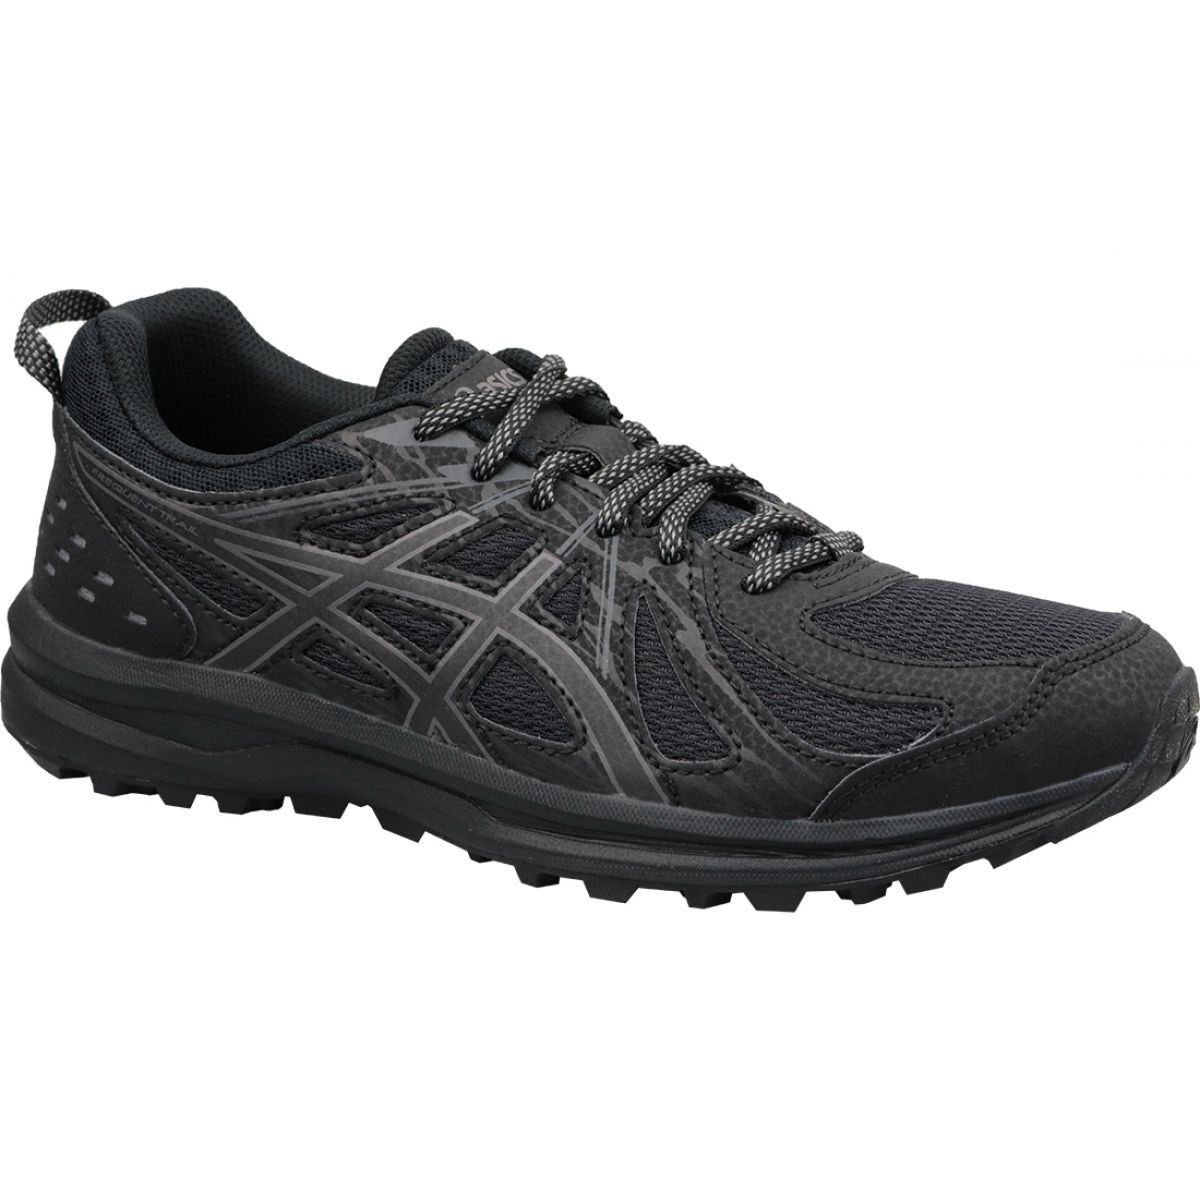 Buty Biegowe Asics Frequent Trail W 1012a022 001 Czarne Black Running Shoes Running Shoes Asics Women Shoes